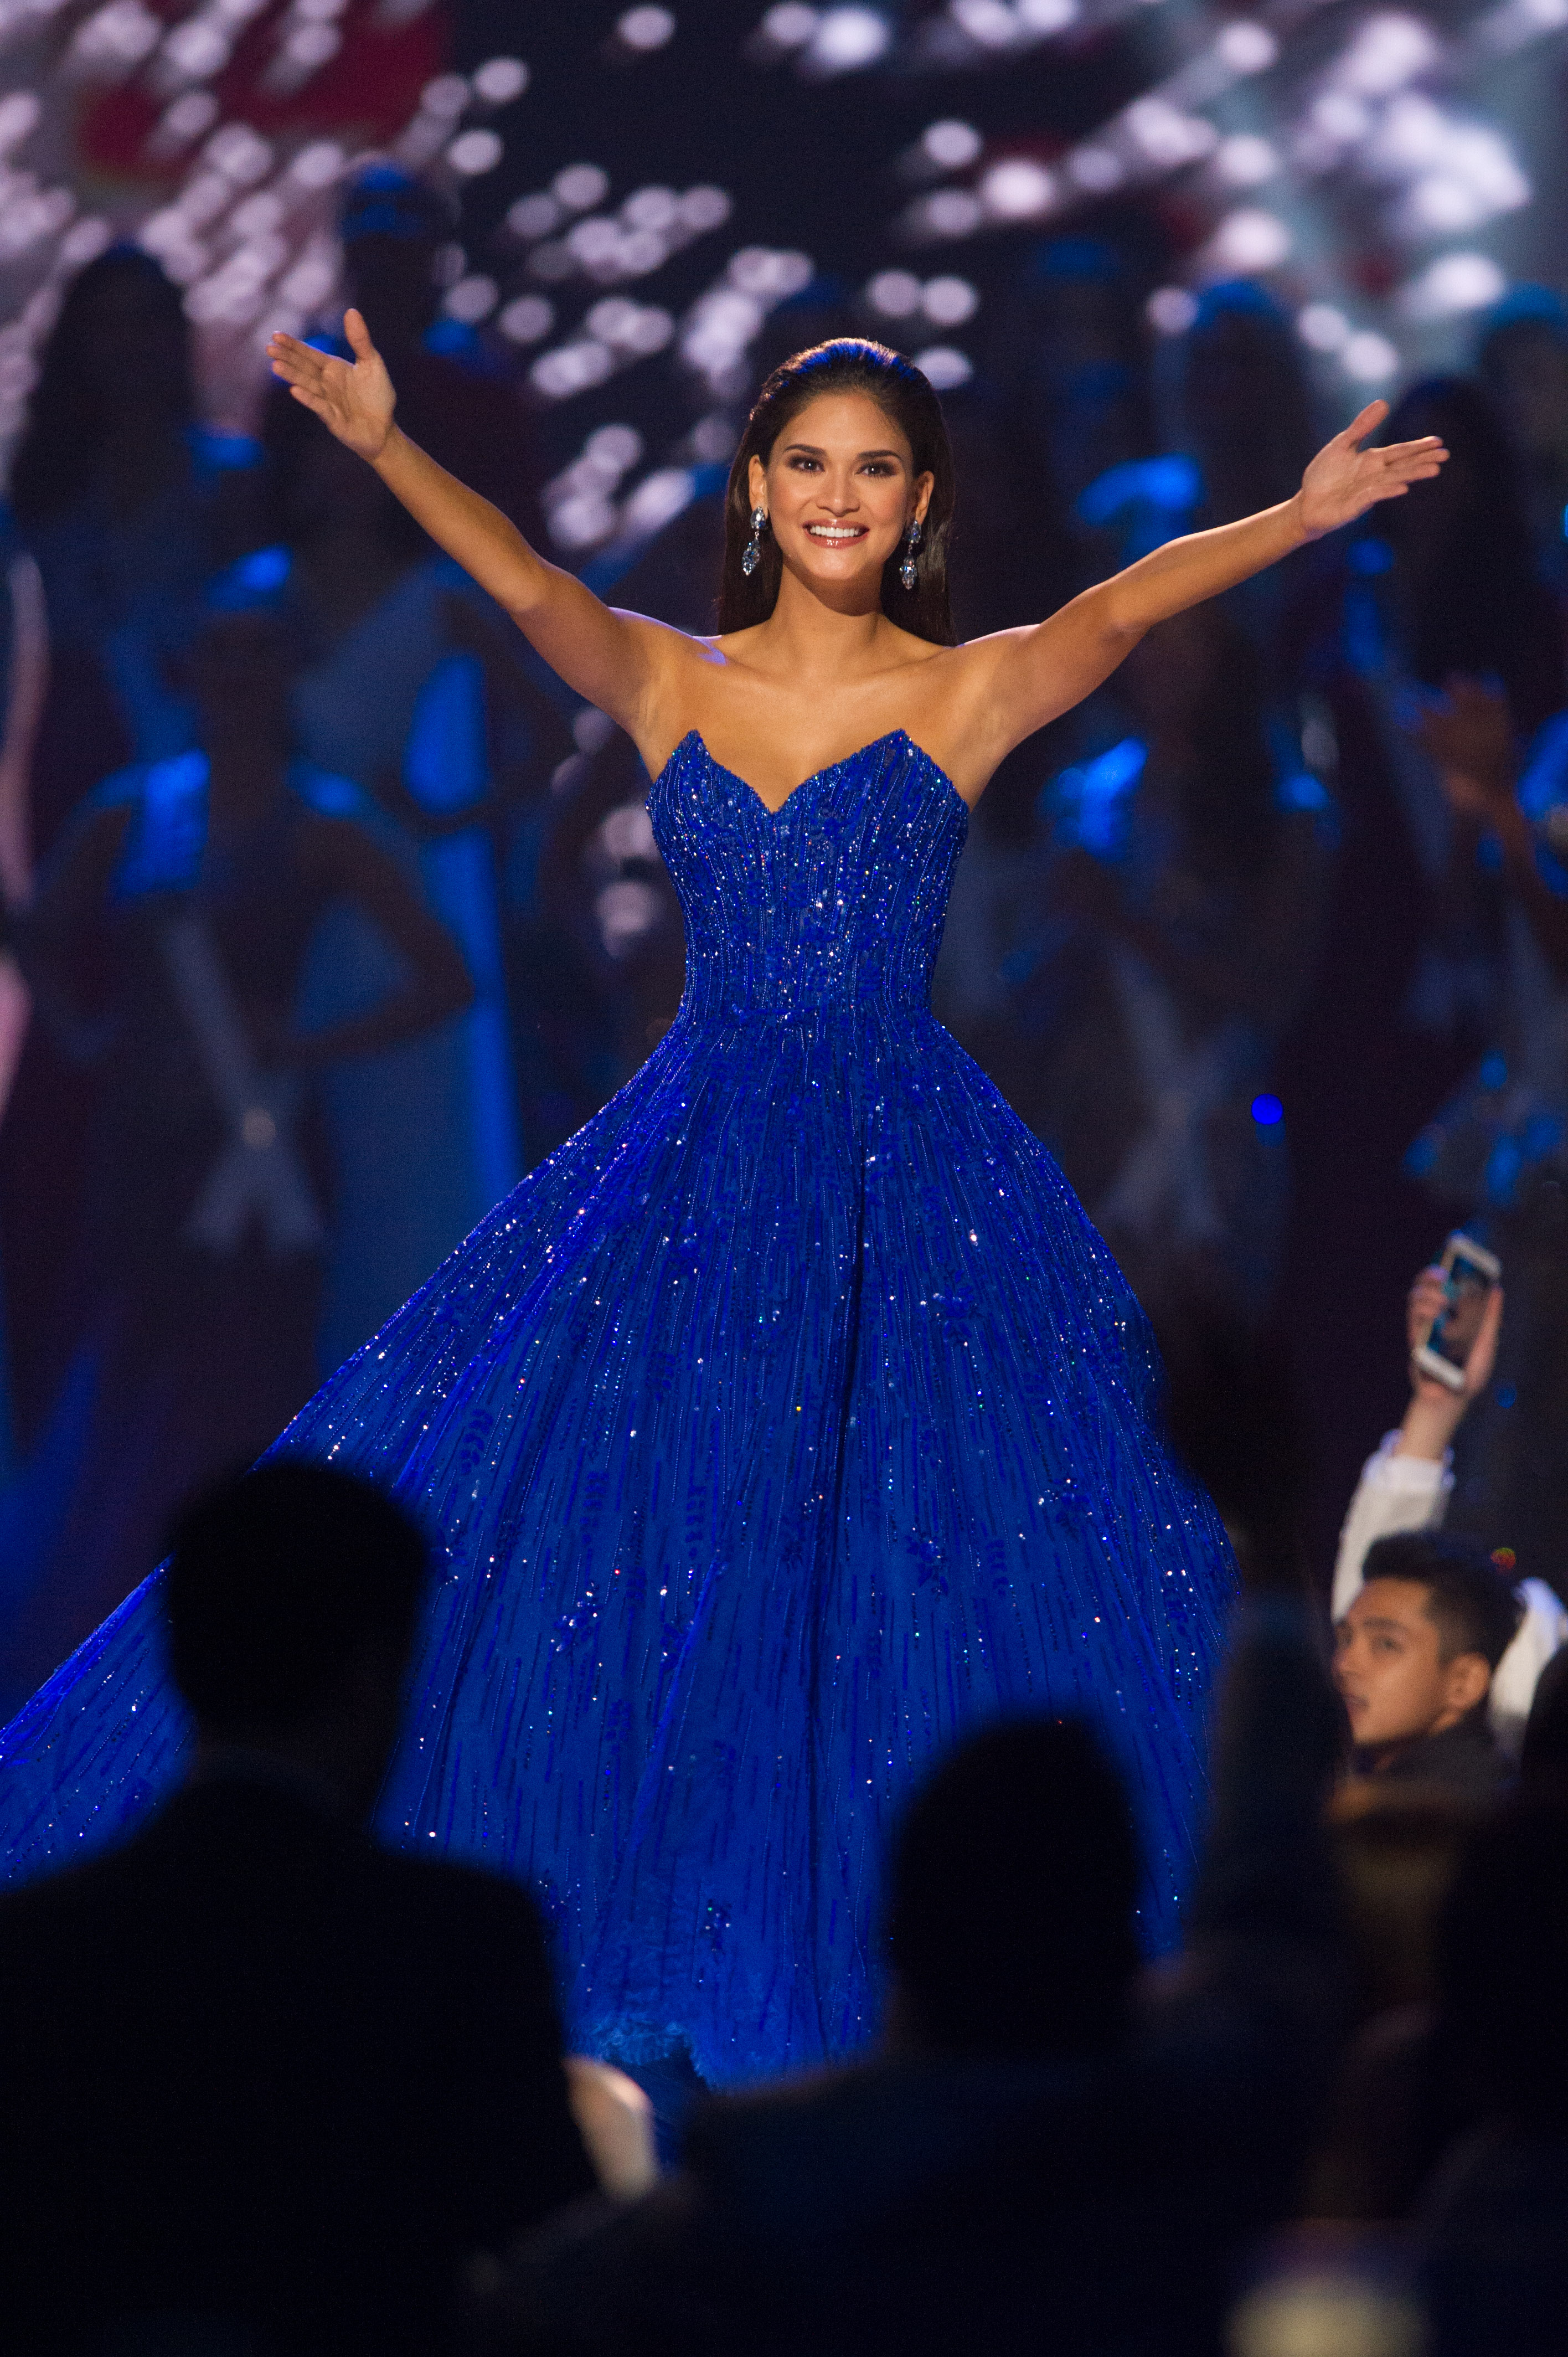 Pia Wurtzbach takes her final walk as Miss Universe 2015 during The 65th MISS UNIVERSEu00c2u00ae Telecast airing on FOX at 7:00 PM ET live/PT tape-delayed on Sunday, January 29 from the Mall of Asia Arena. The contestants have been touring, filming, rehearsing and preparing to compete for the Miss Universe crown in the Philippines. HO/The Miss Universe Organization